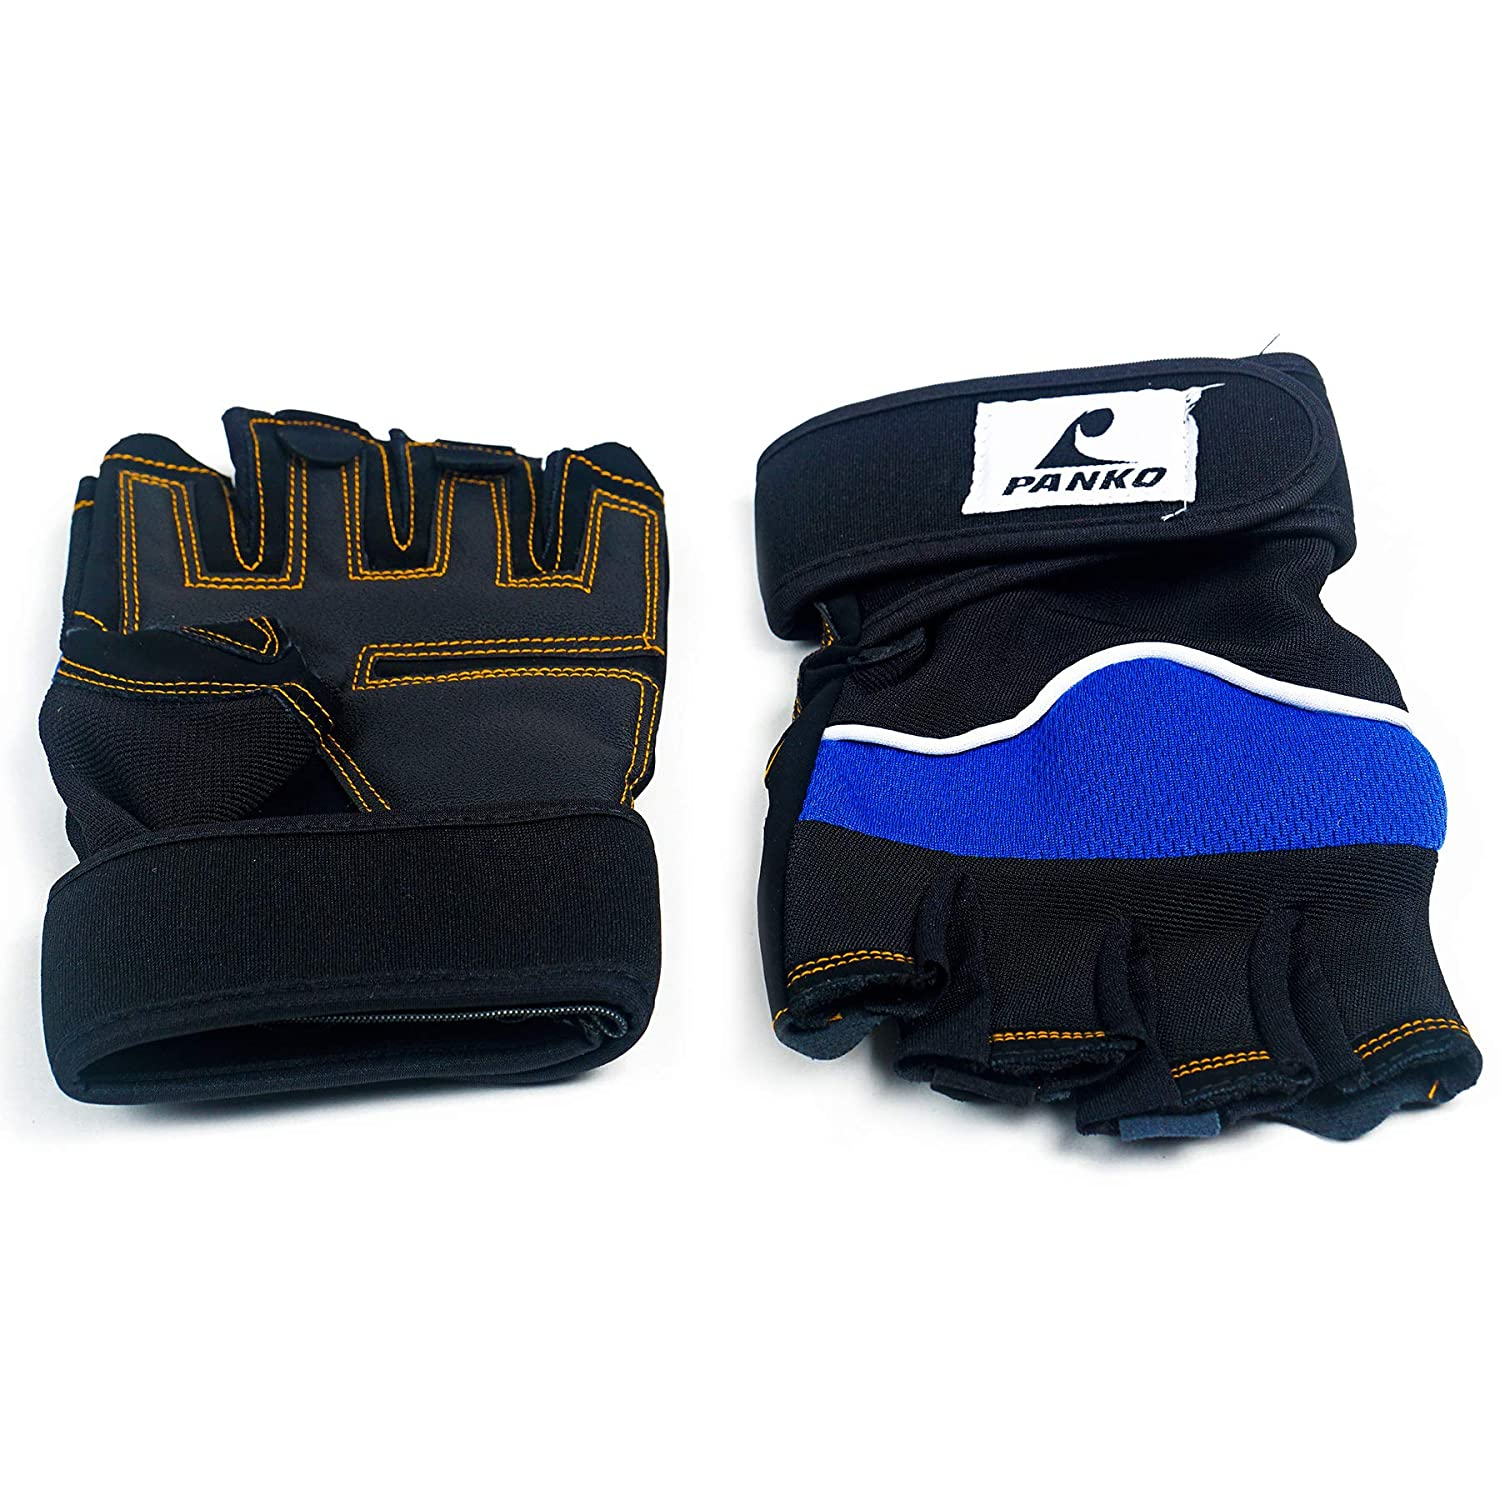 Gym Gloves - Best Quality